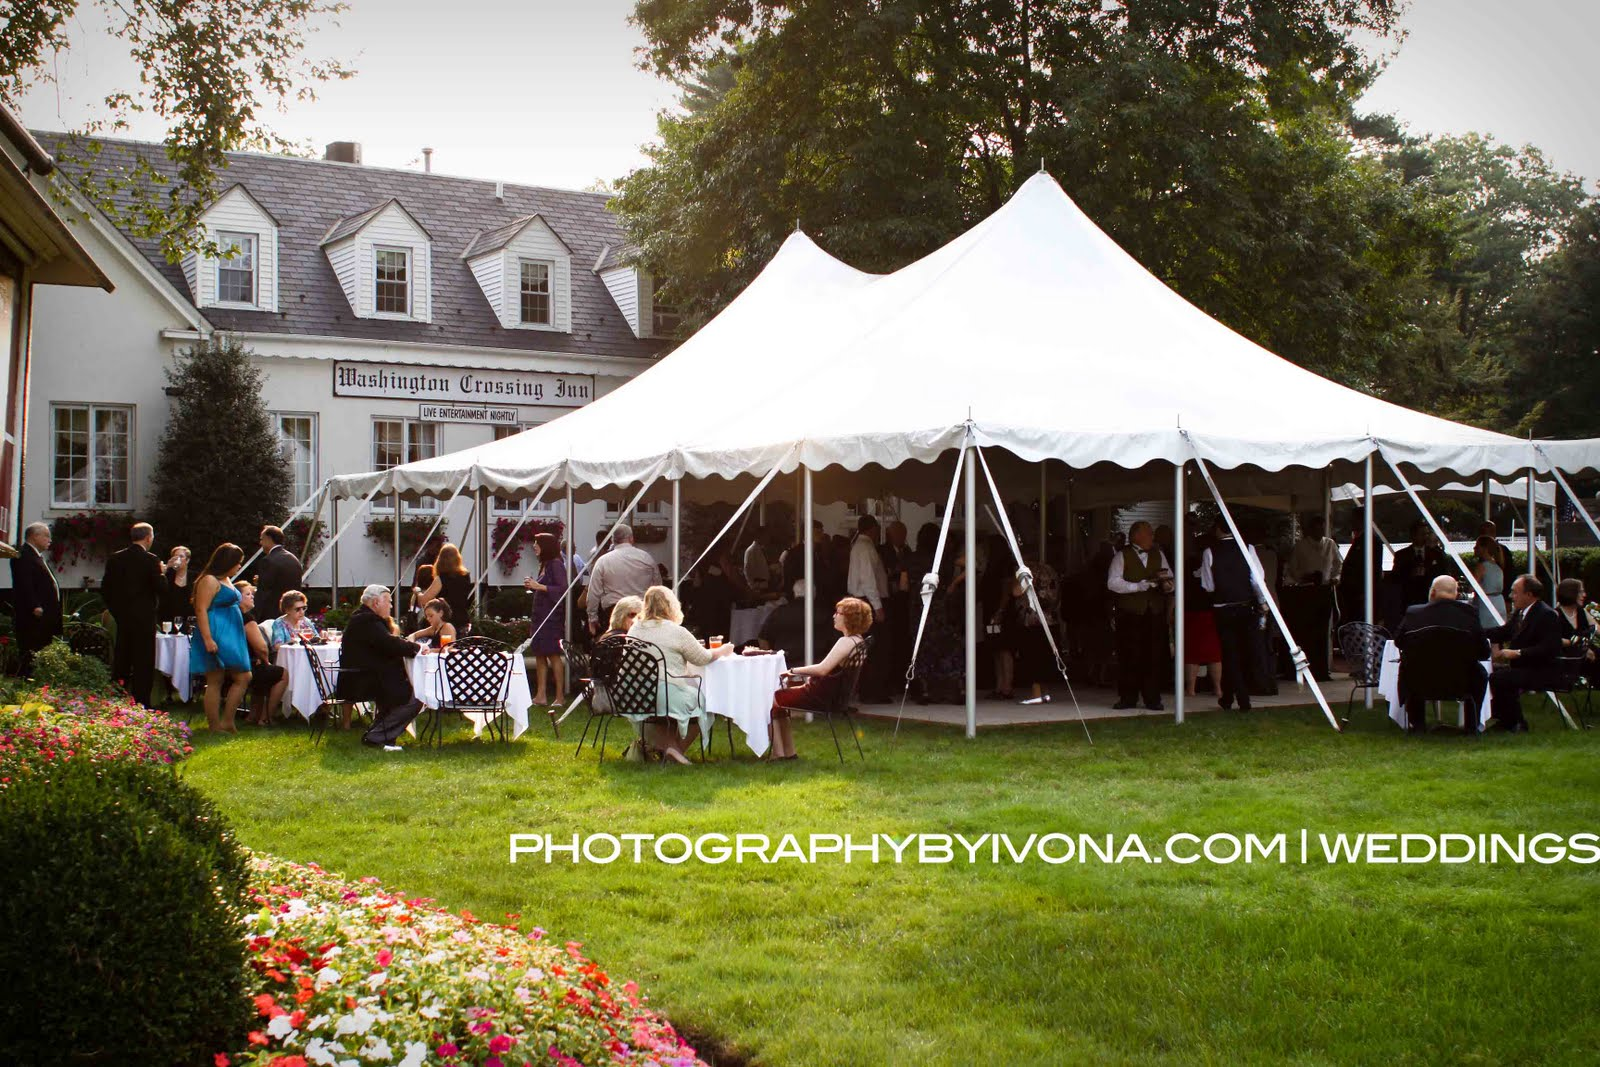 The Washington Crossing Inn Is Perfect It Was So Charming Intimate And Beautiful Flowers Everywhere All Buildings Have Much Character